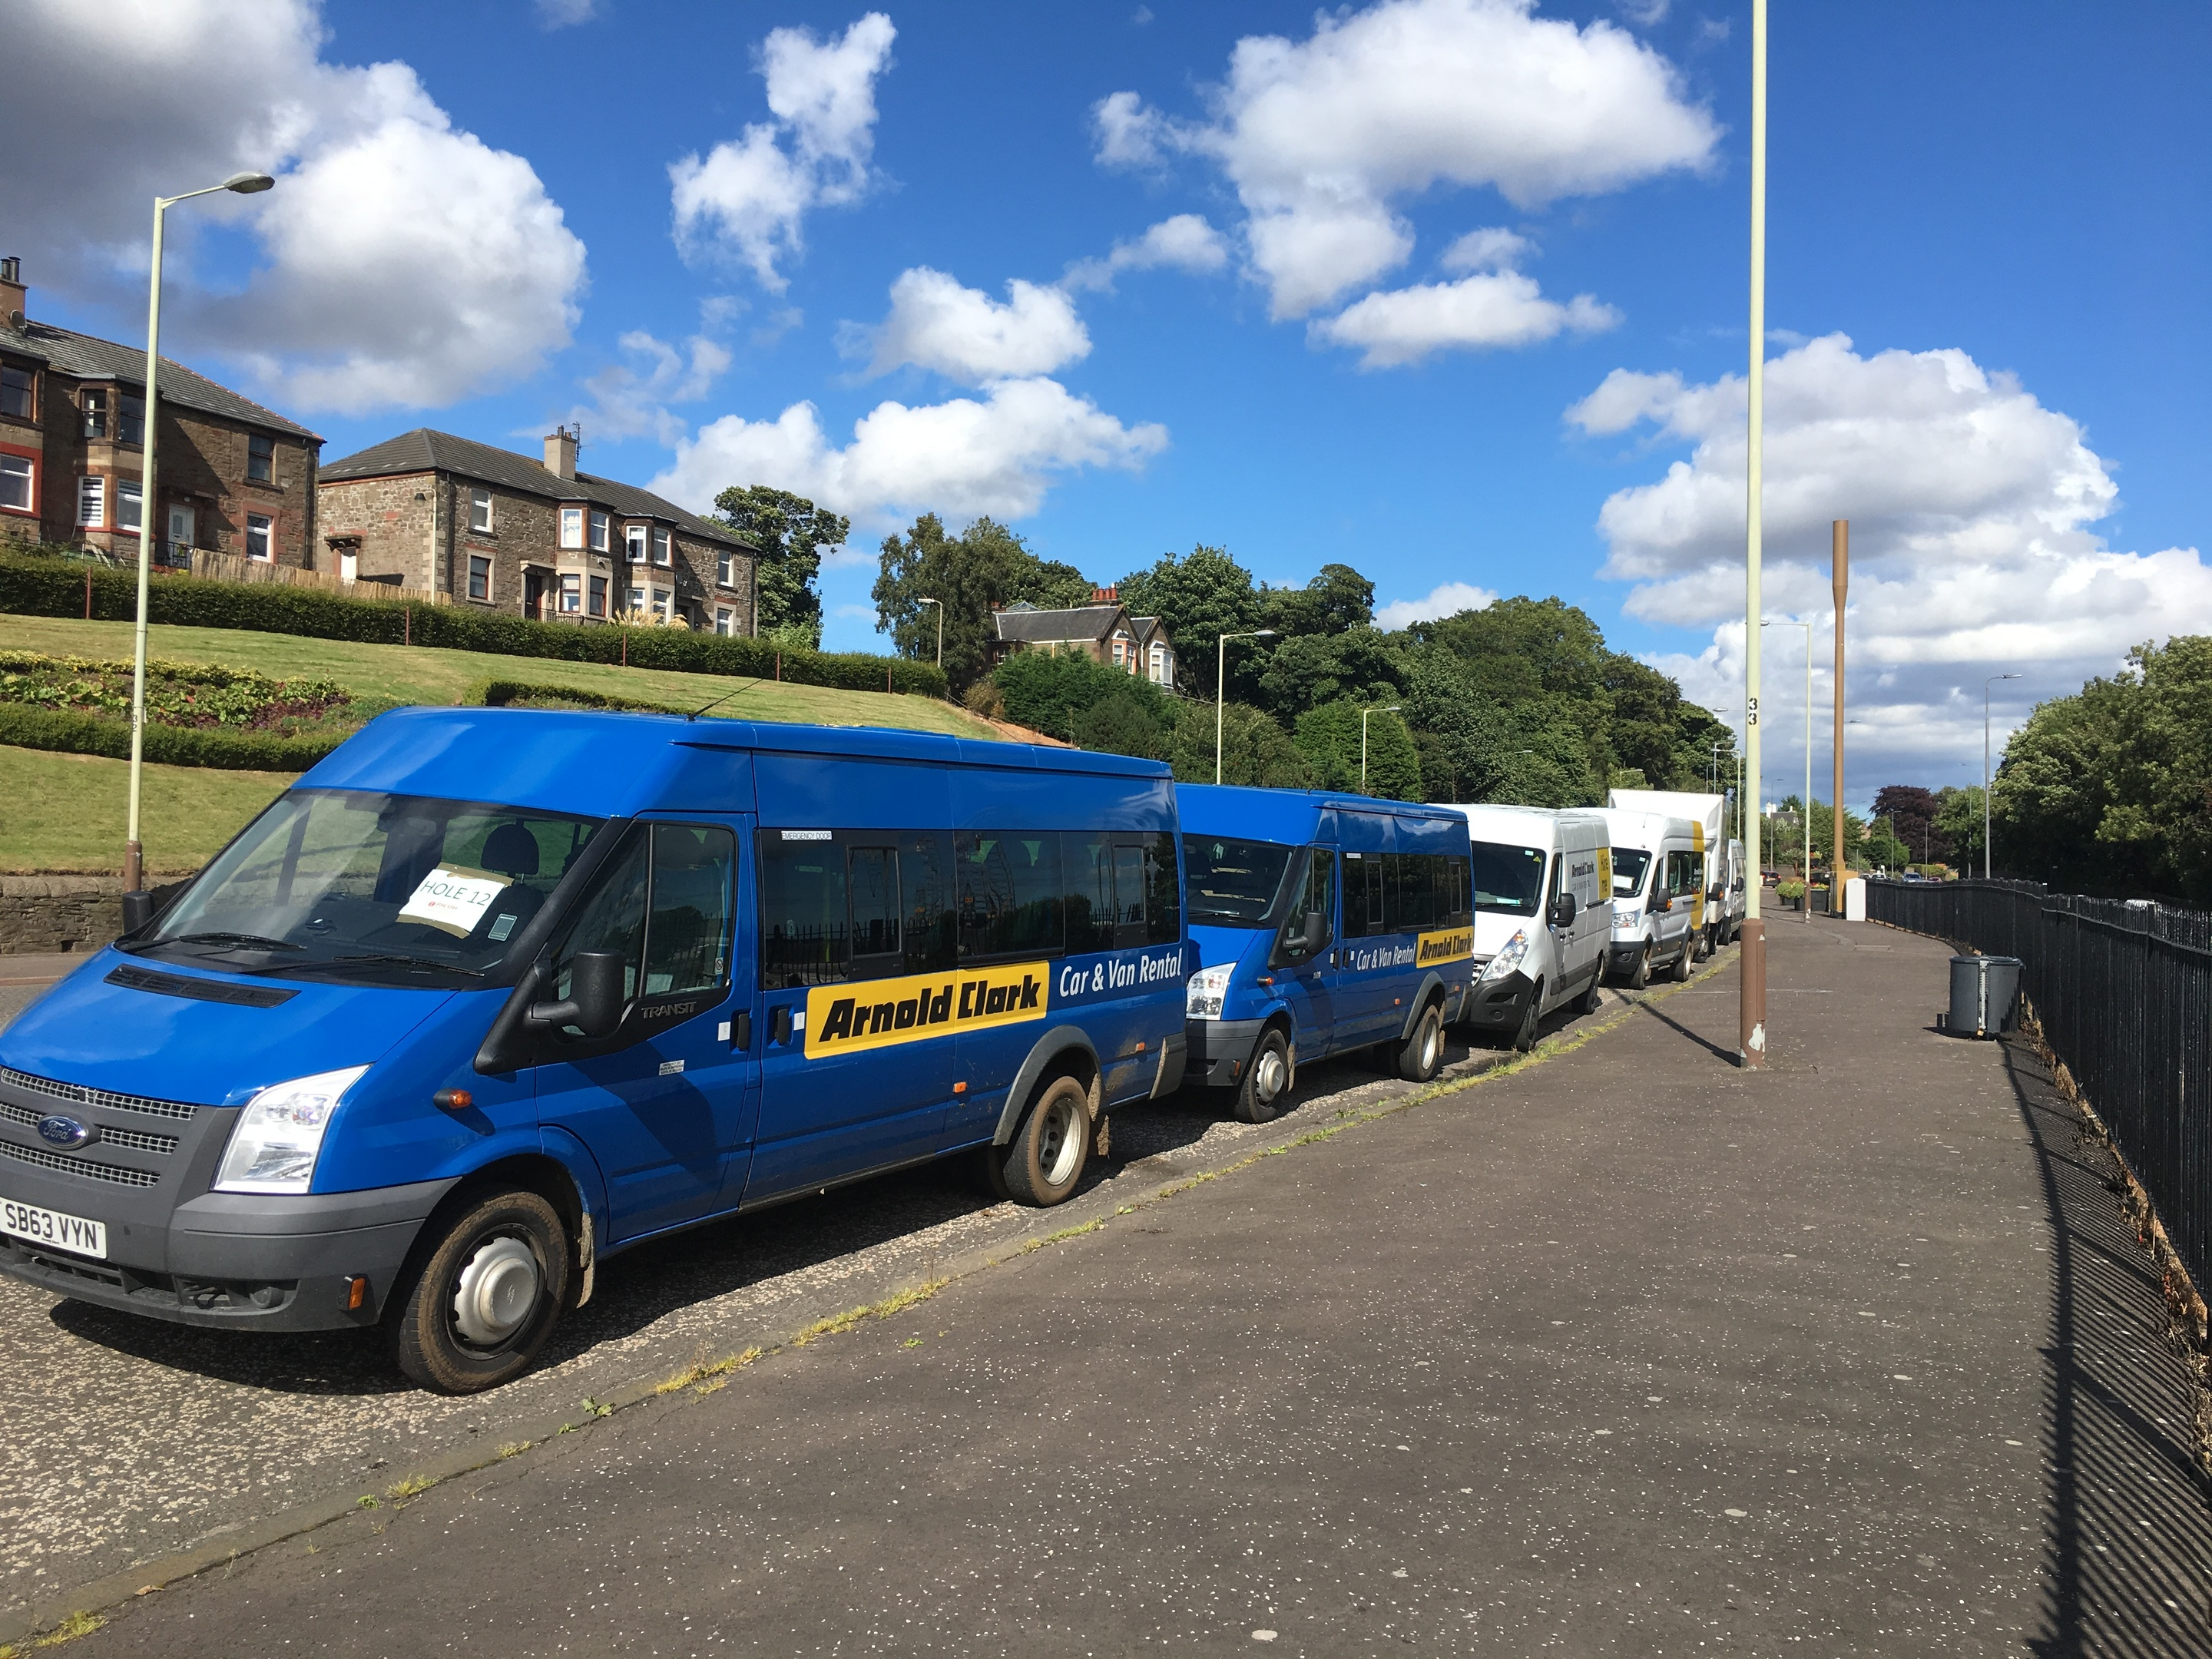 The vans are said to be an almost permanent fixture on Broughty Ferry Road.